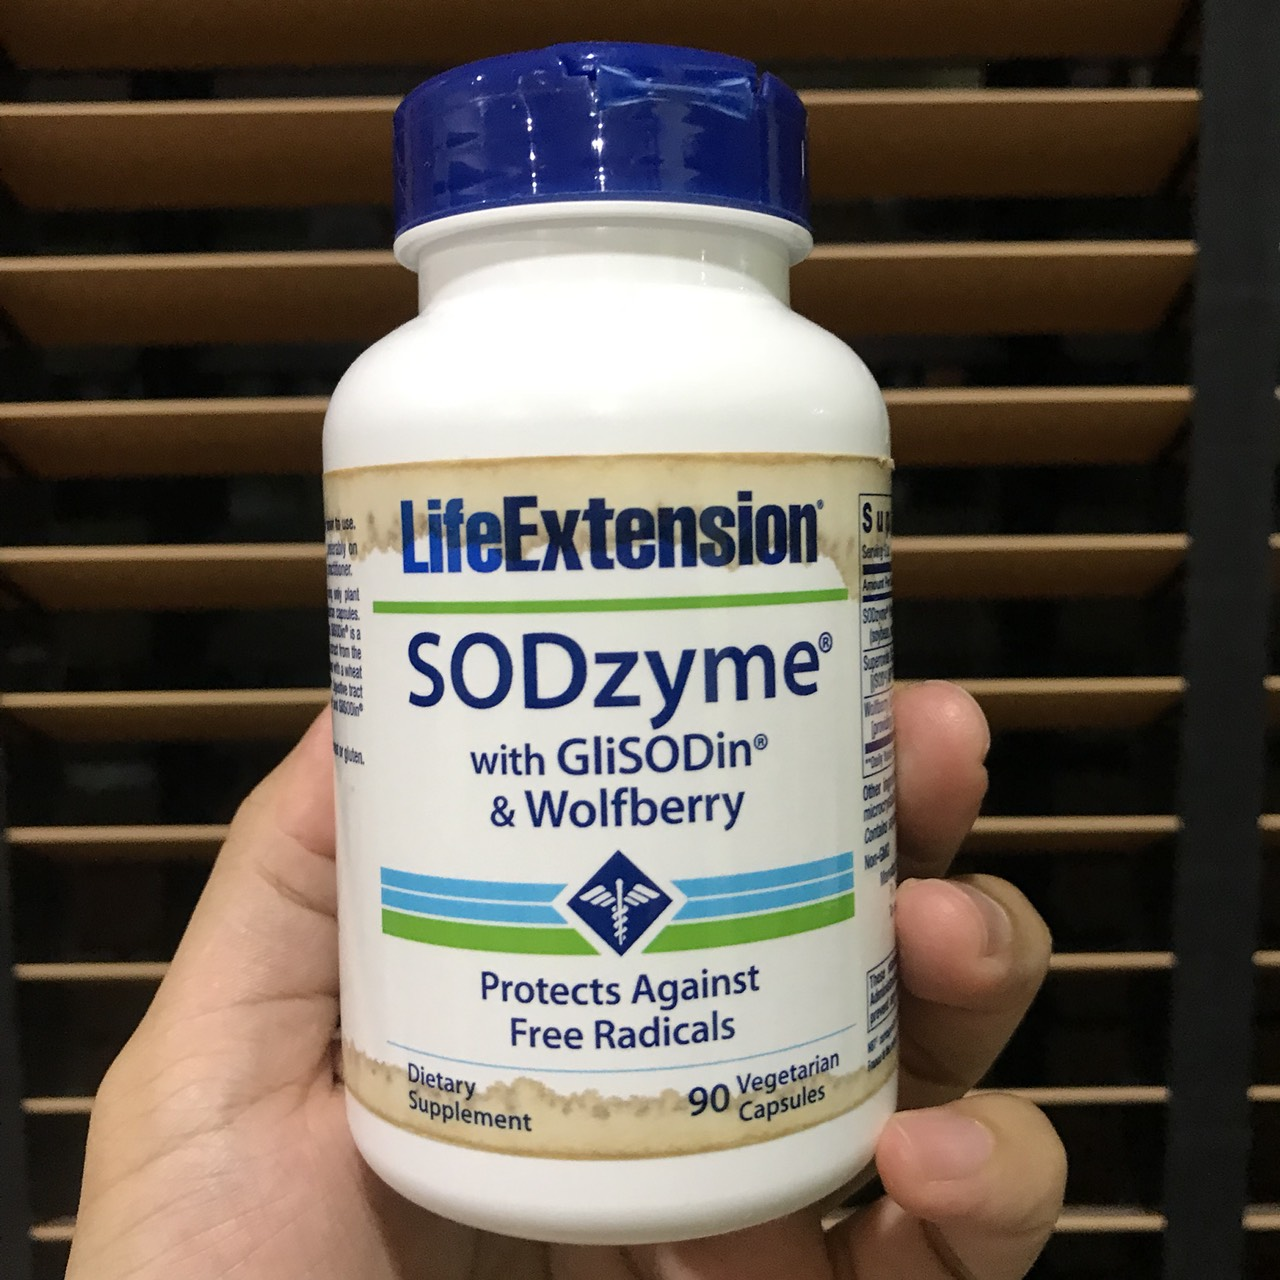 # ฉลากเปื้อน # Life Extension, SODzyme with GliSODin & Wolfberry, 90 Veggie Caps